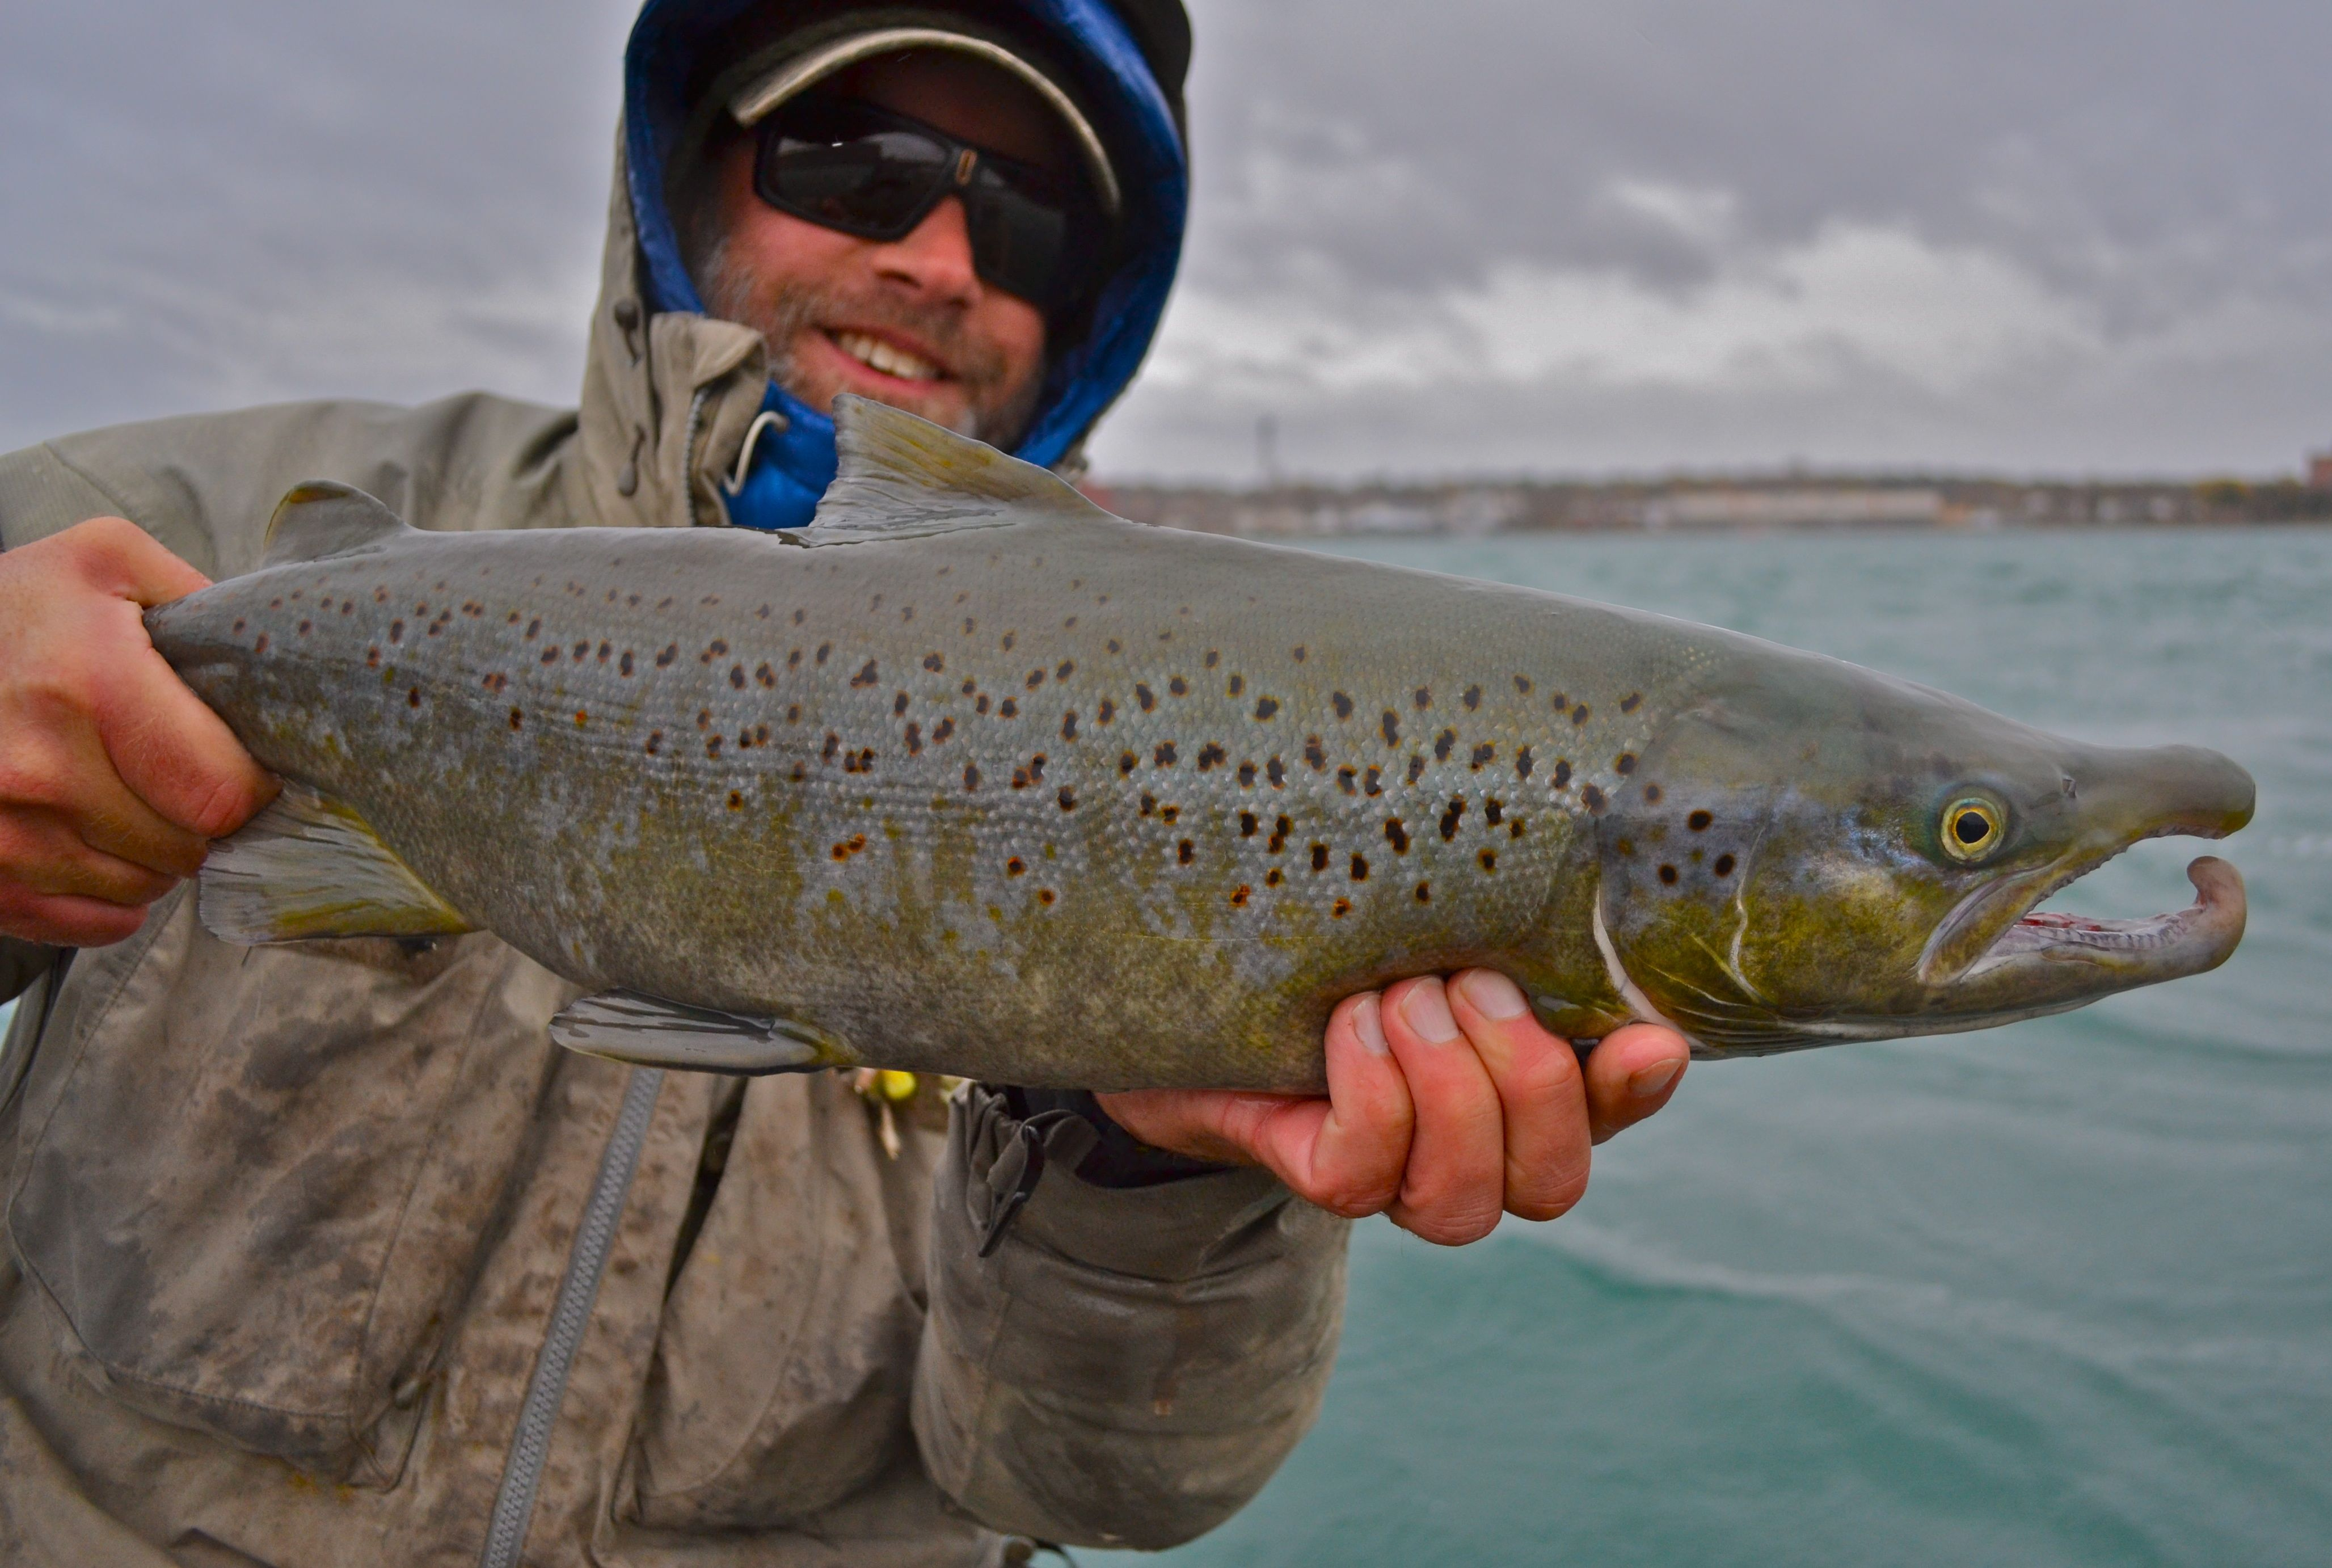 Petzke brad midwest fly fishing expo 2015 for Fly fishing shows